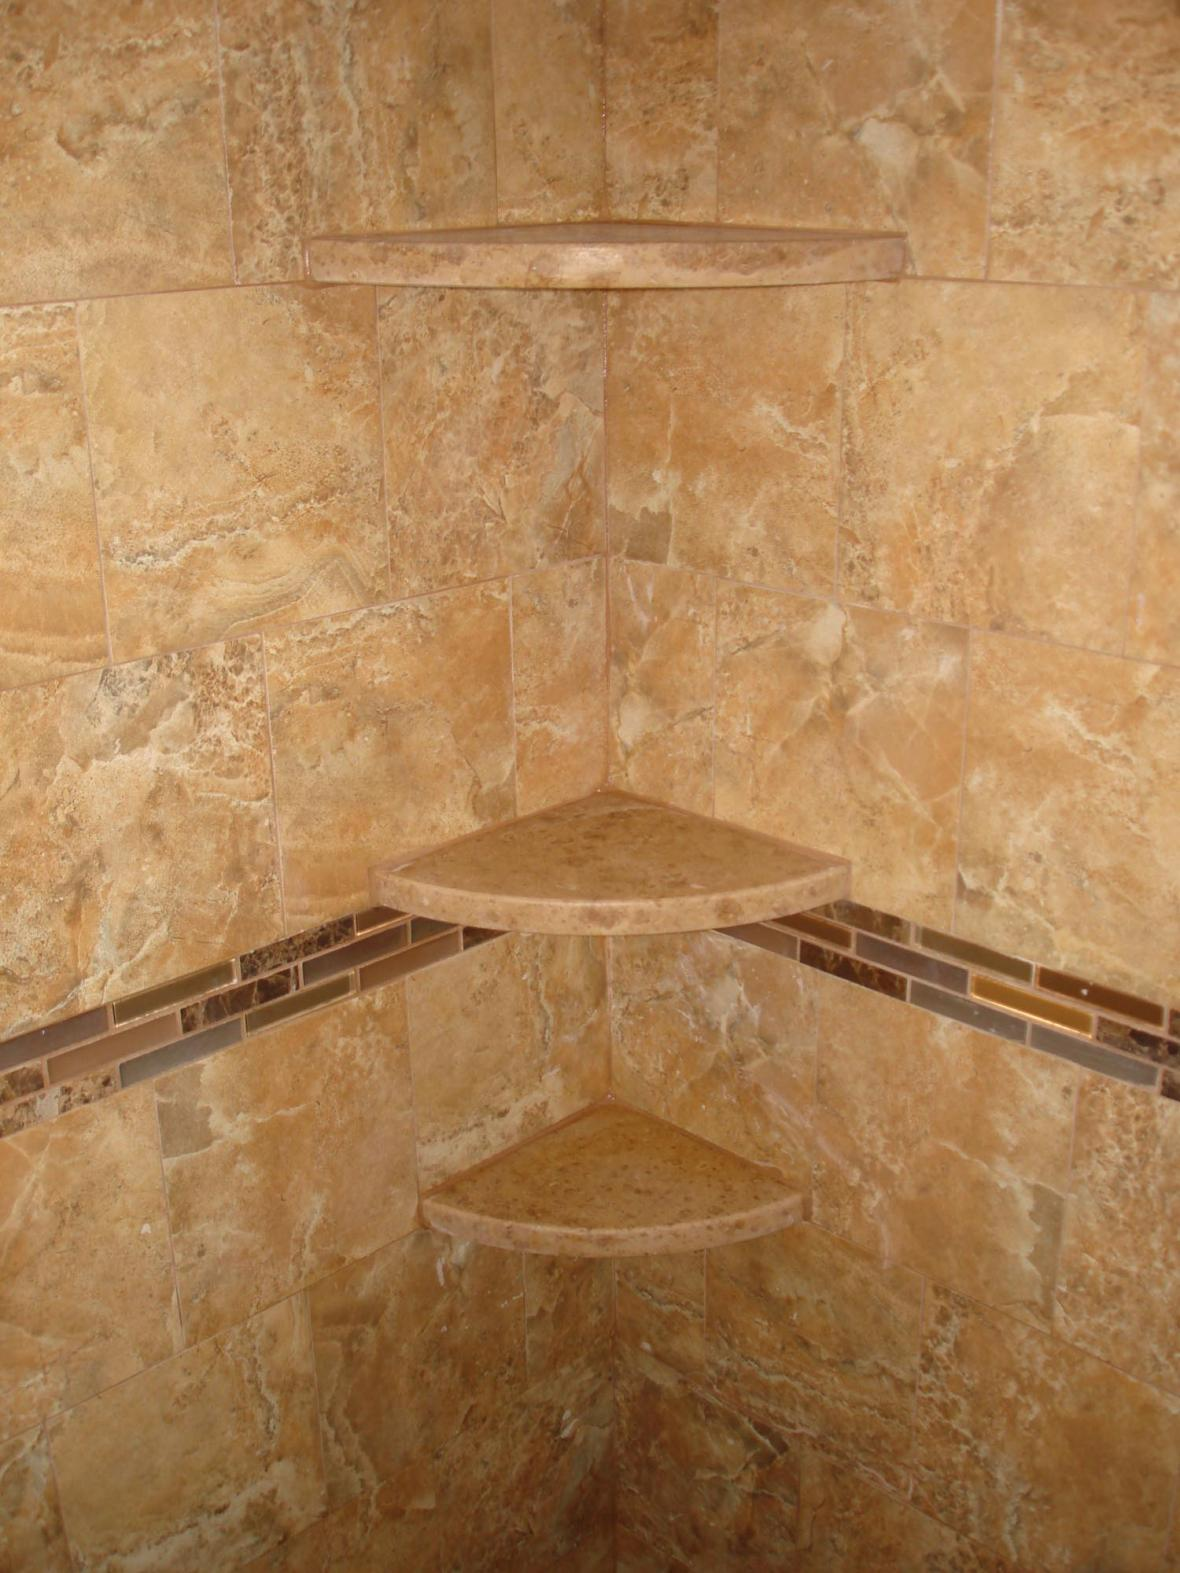 Marble Shampoo shelves in new tile shower